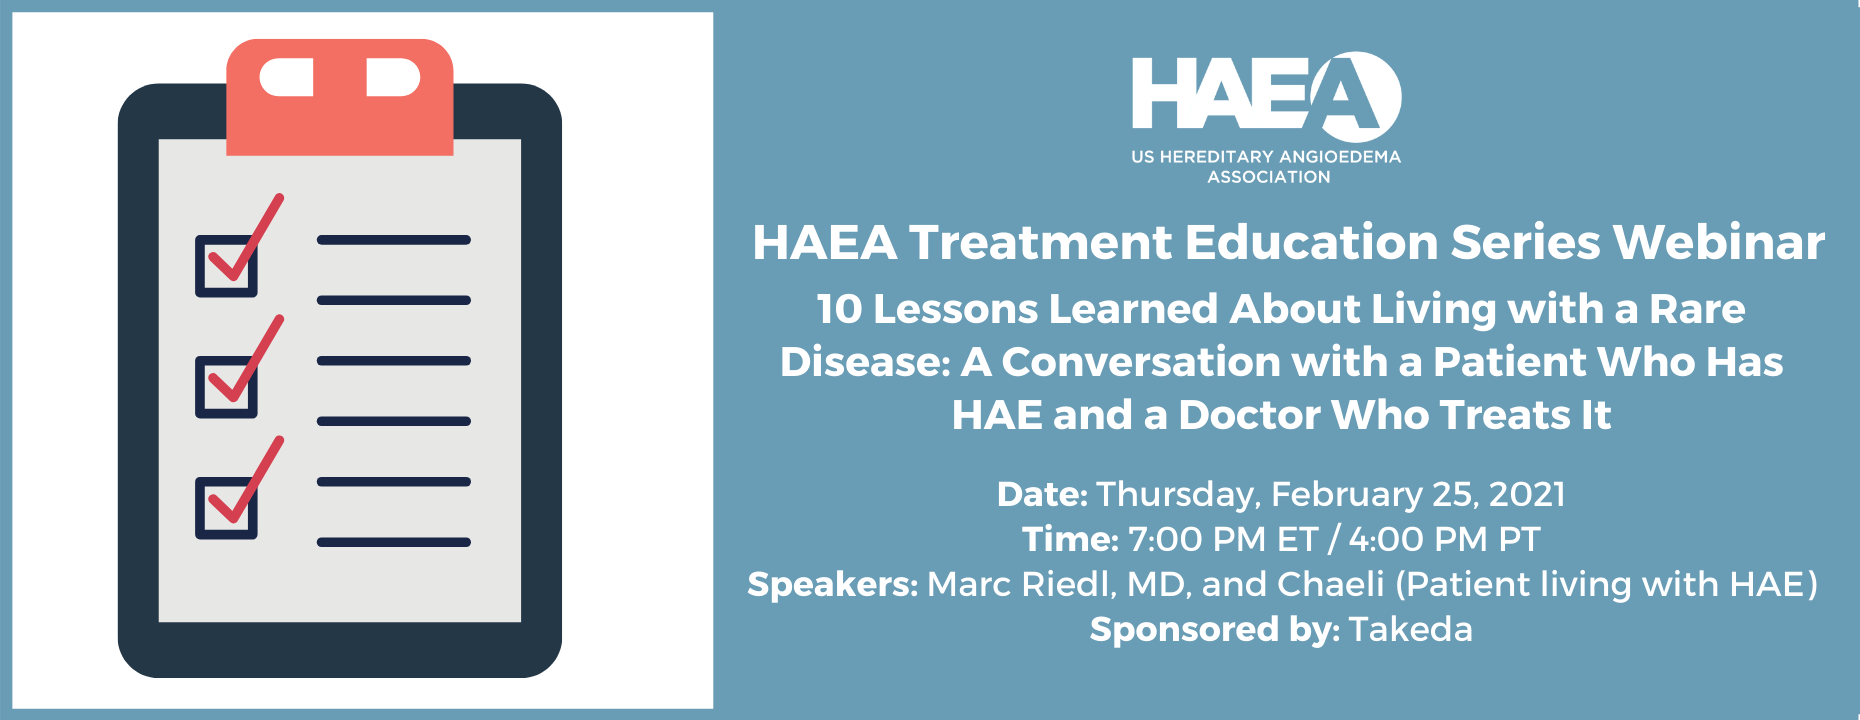 HAEA Treatment Education Series Webinar